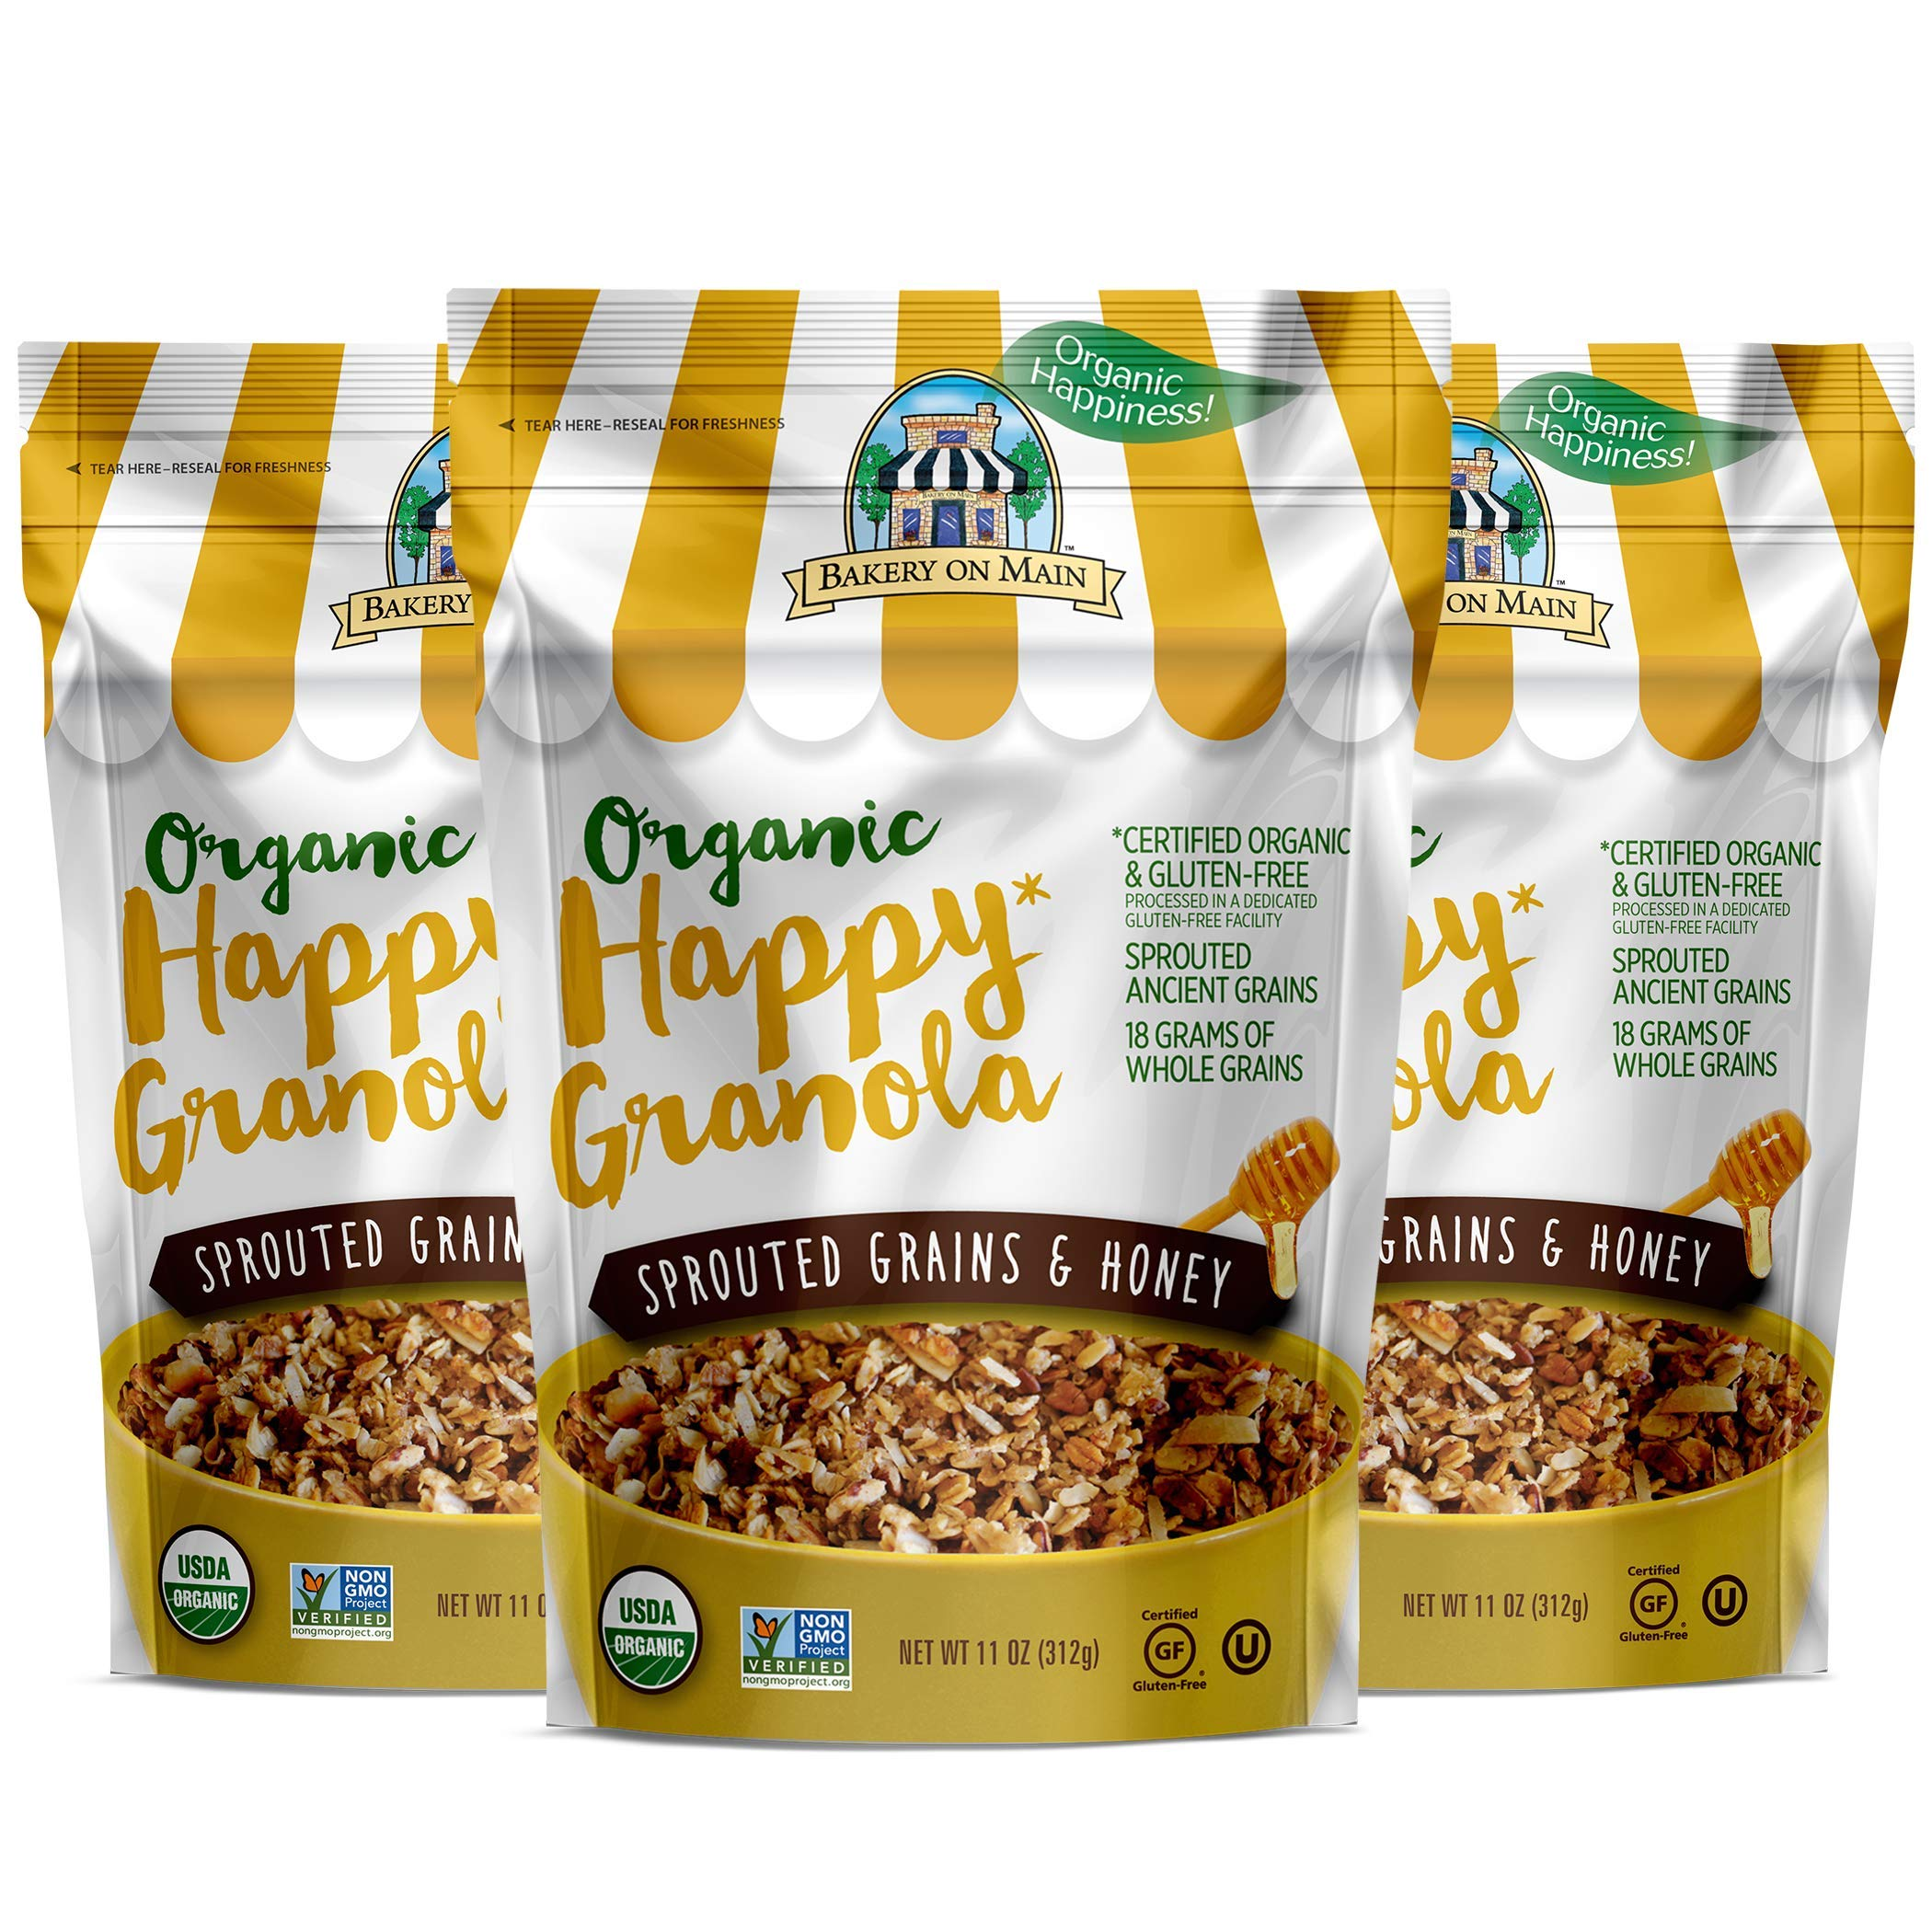 Bakery On Main Gluten-Free, Organic Happy Granola, Sprouted Grains & Honey, 11 Ounce Bag (3 Count) by Bakery On Main